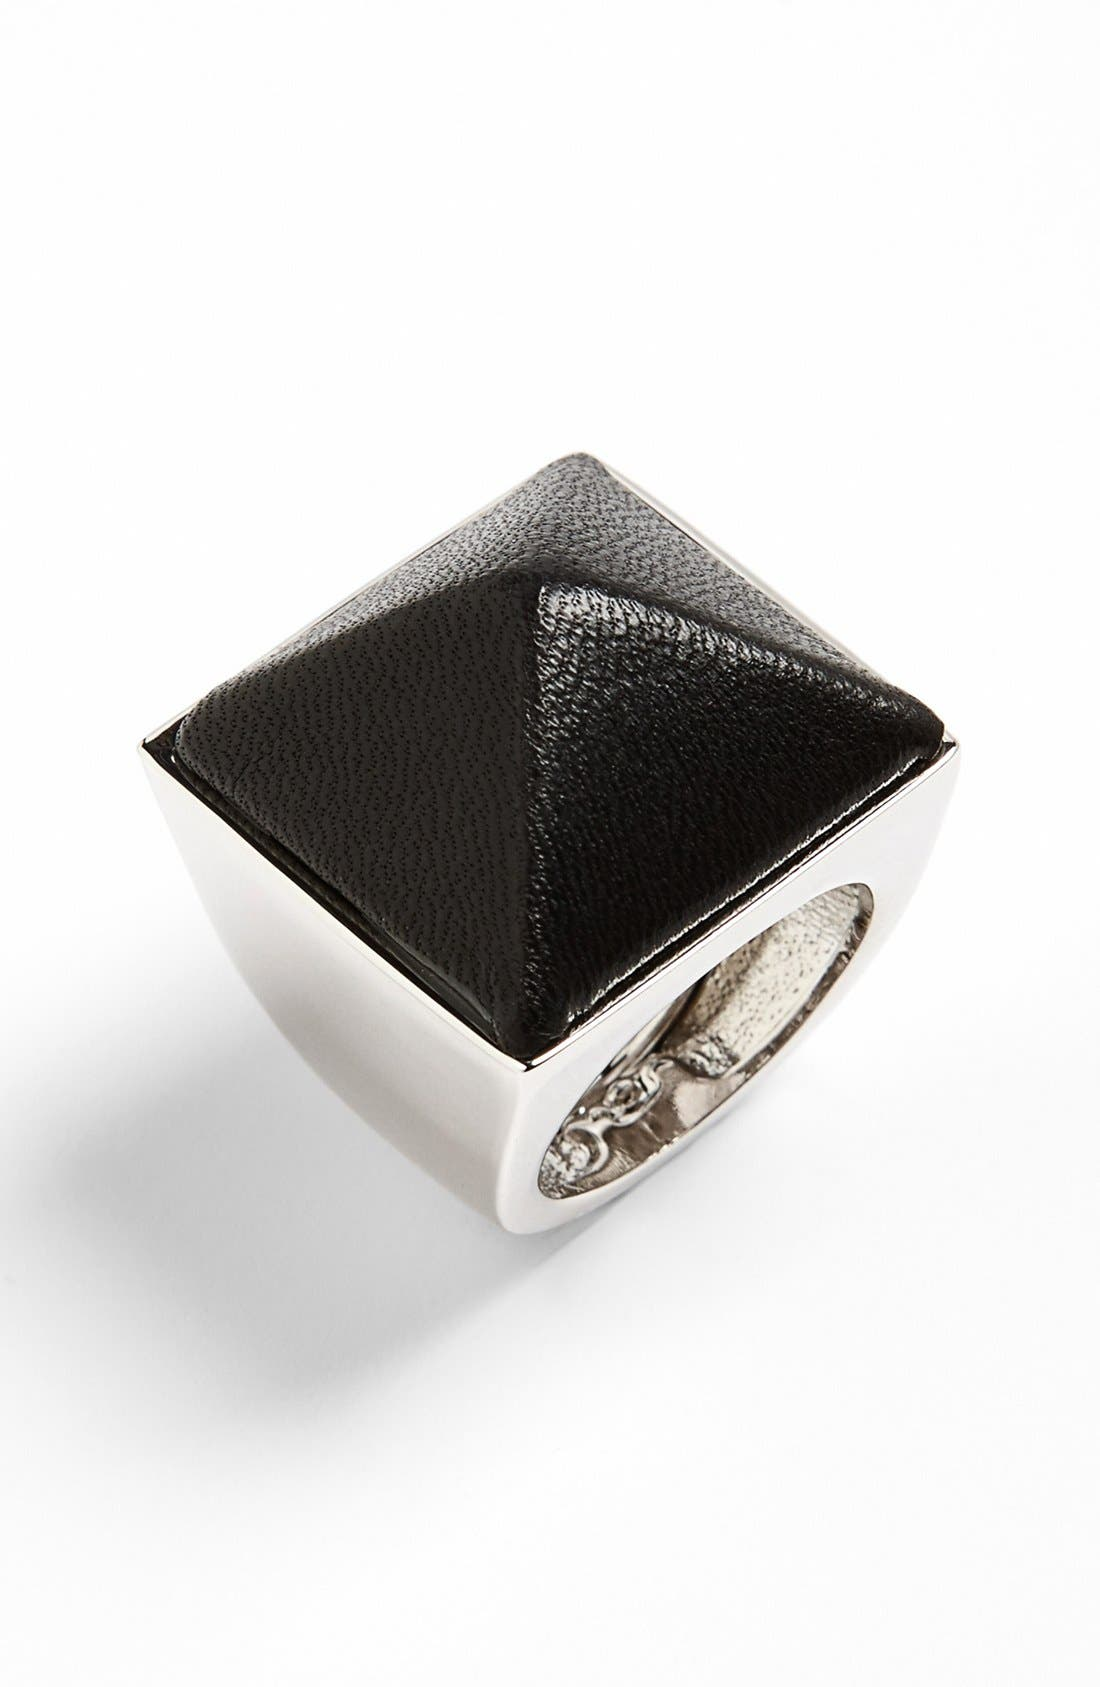 Alternate Image 1 Selected - Vince Camuto 'Blow Up Pyramid' Leather Stud Statement Ring